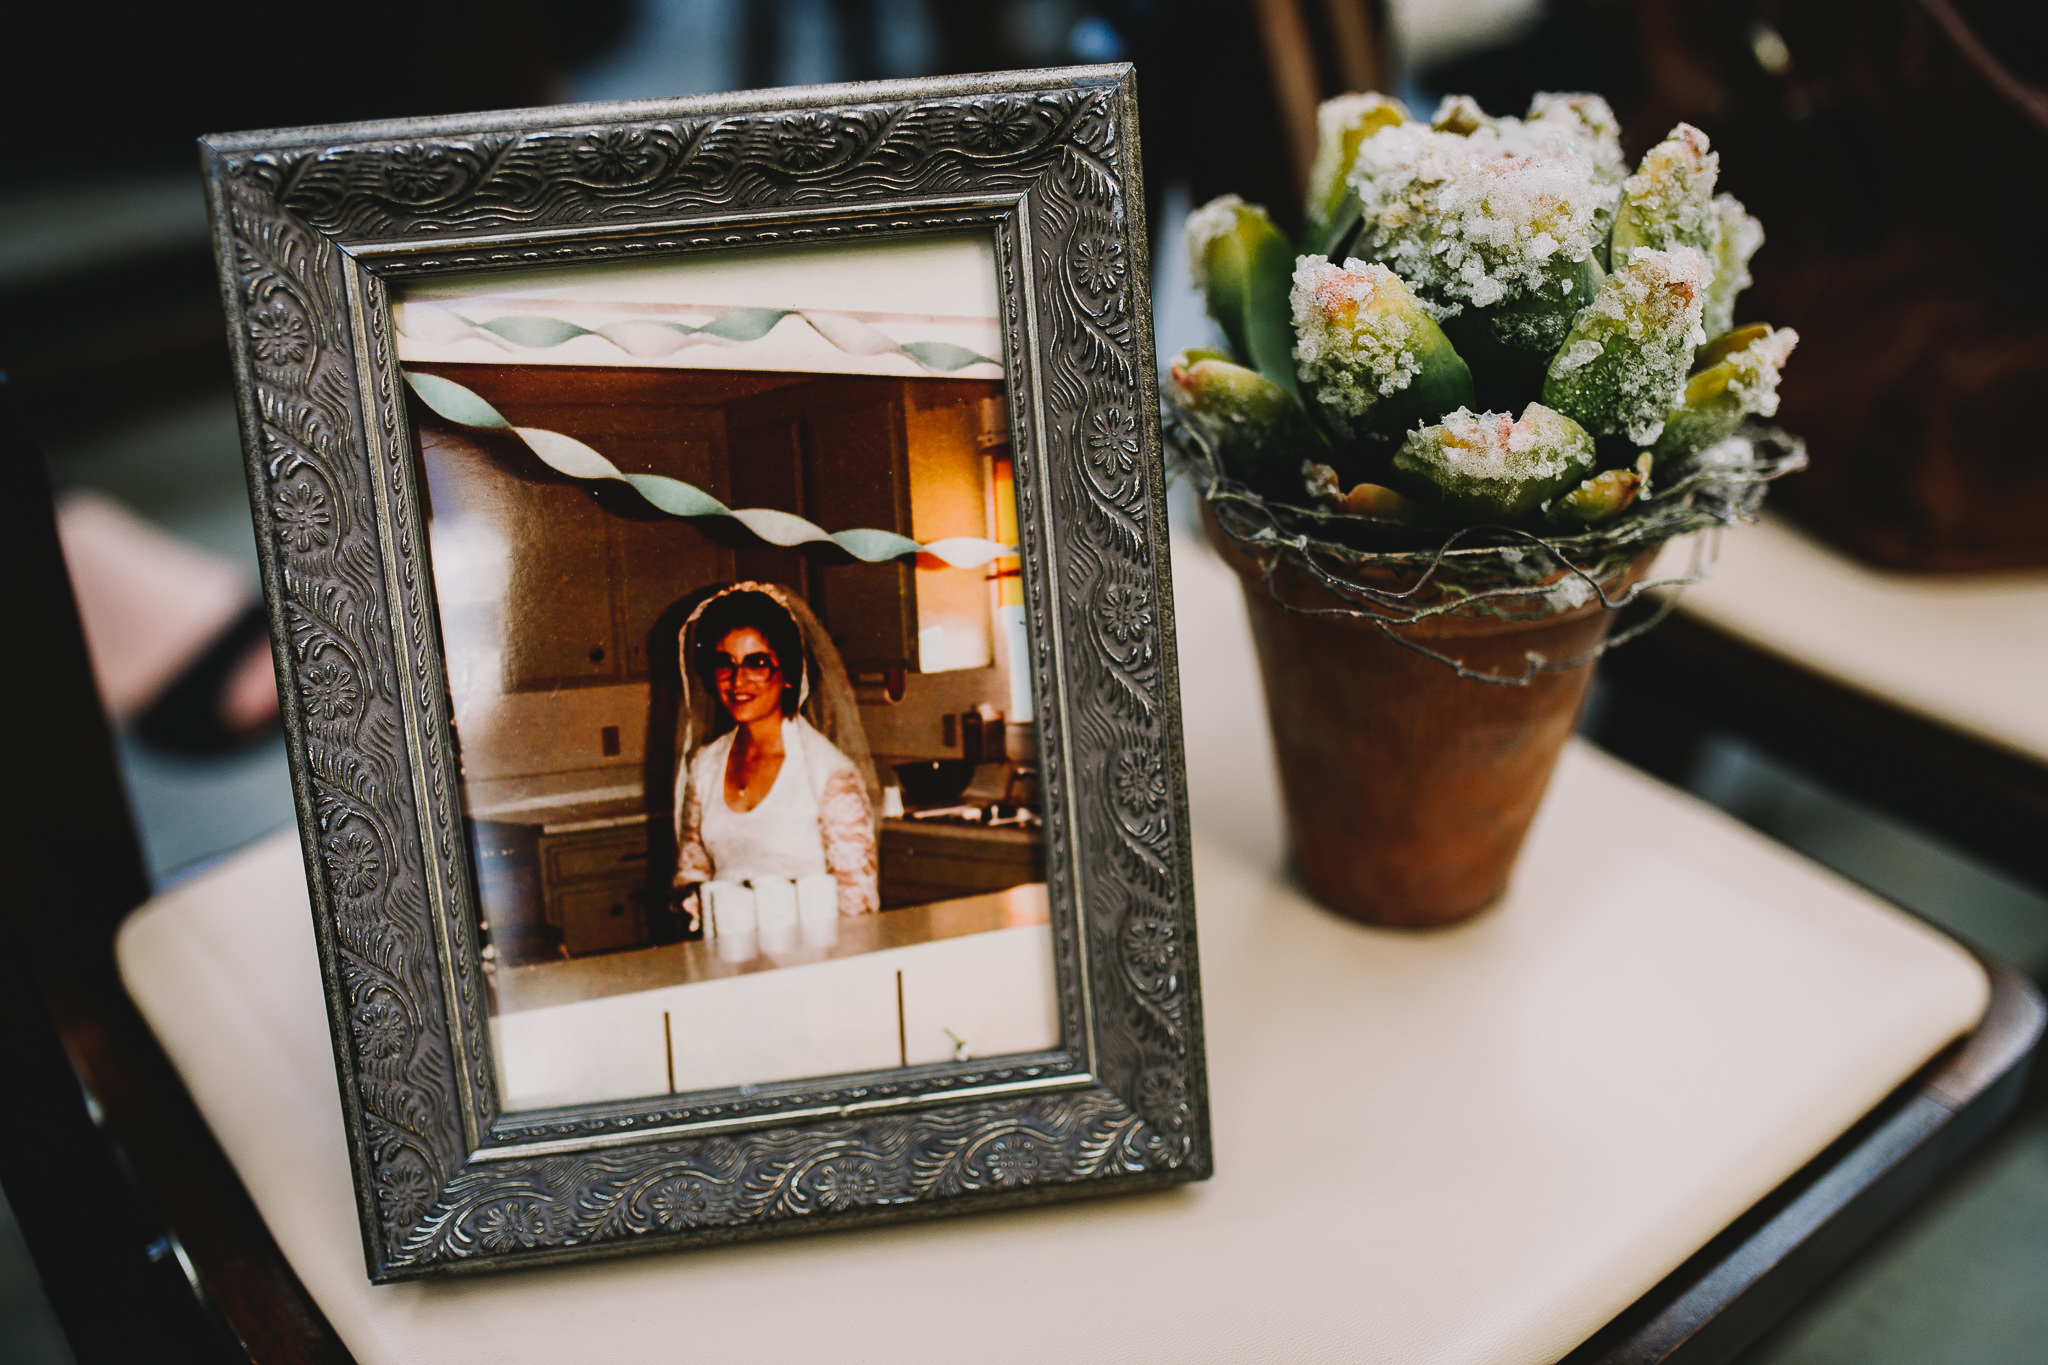 Archer Inspired Photography Sara and Aaron Winchester Mystery House NorCal San Jose California Wedding Photographer-83.jpg